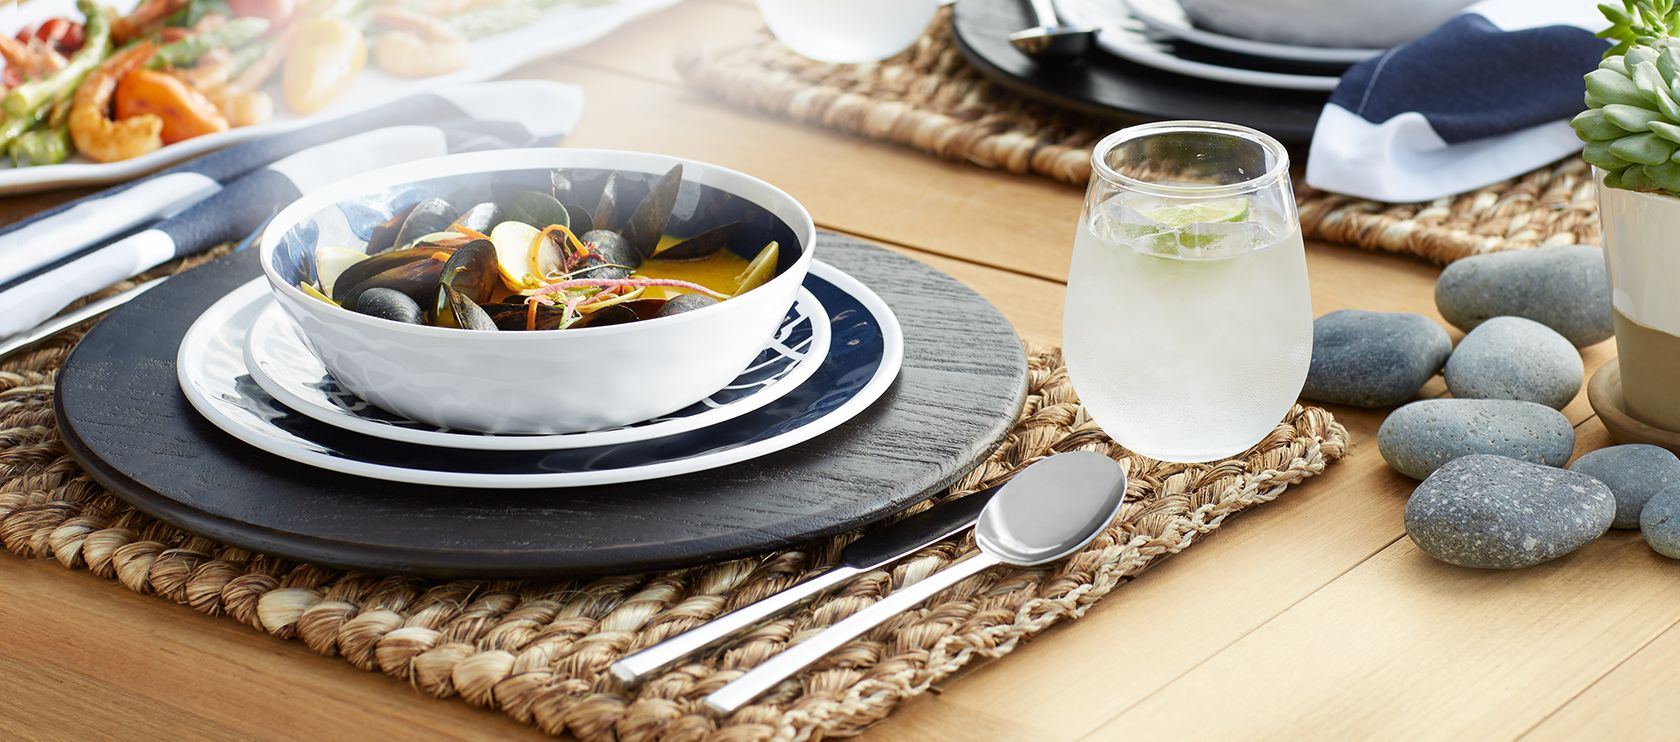 Crate and barrel friends and family - Outdoor Entertaining